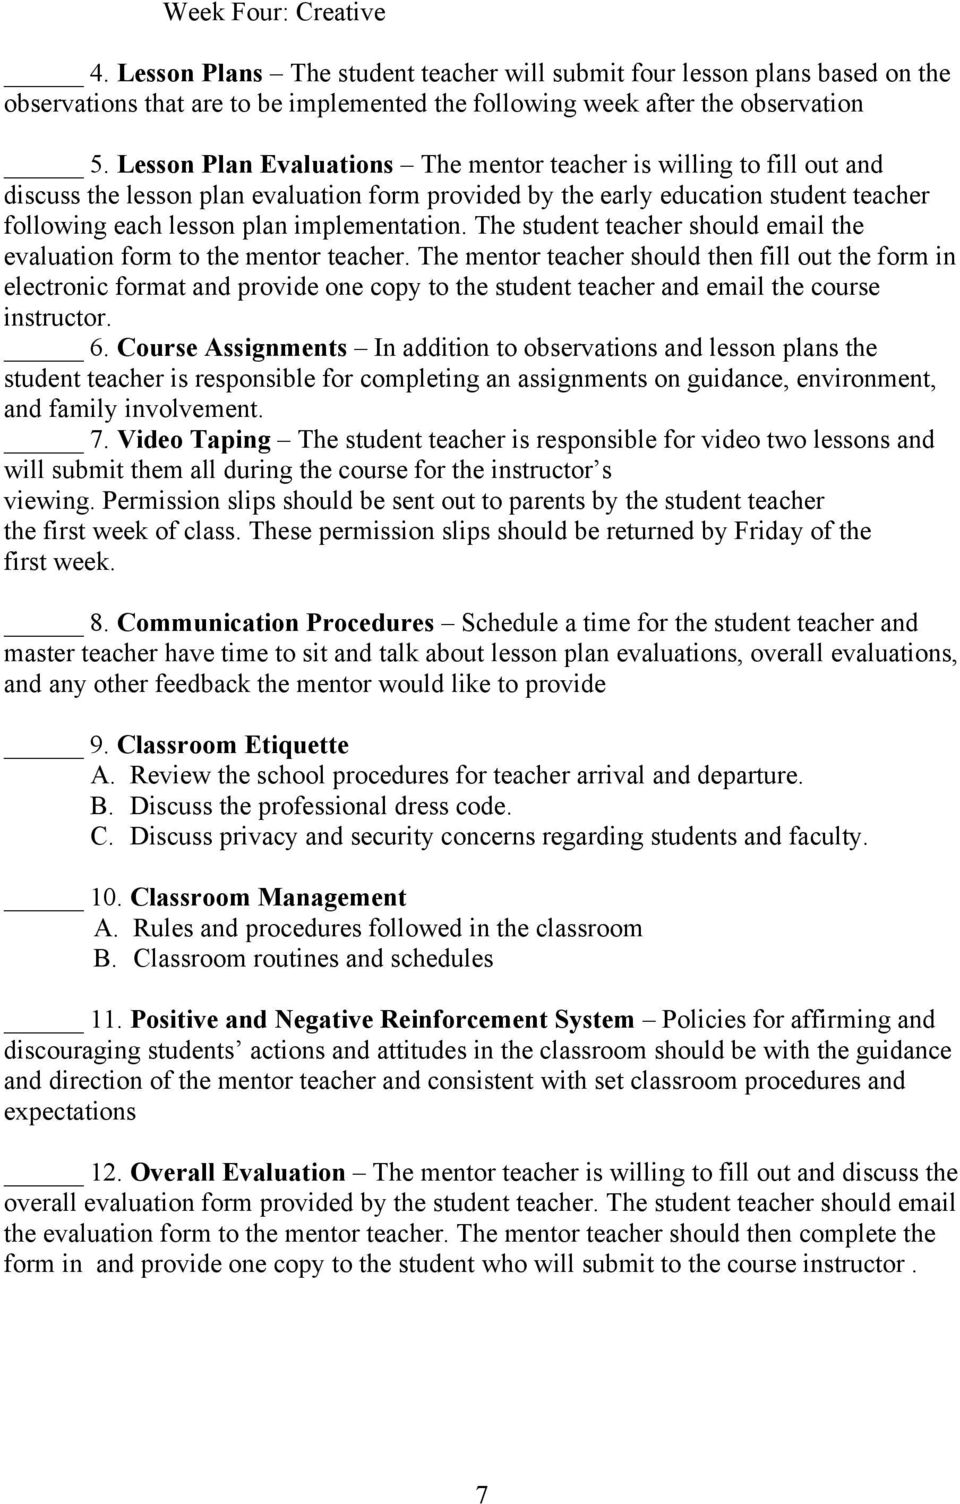 The student teacher should email the evaluation form to the mentor teacher.